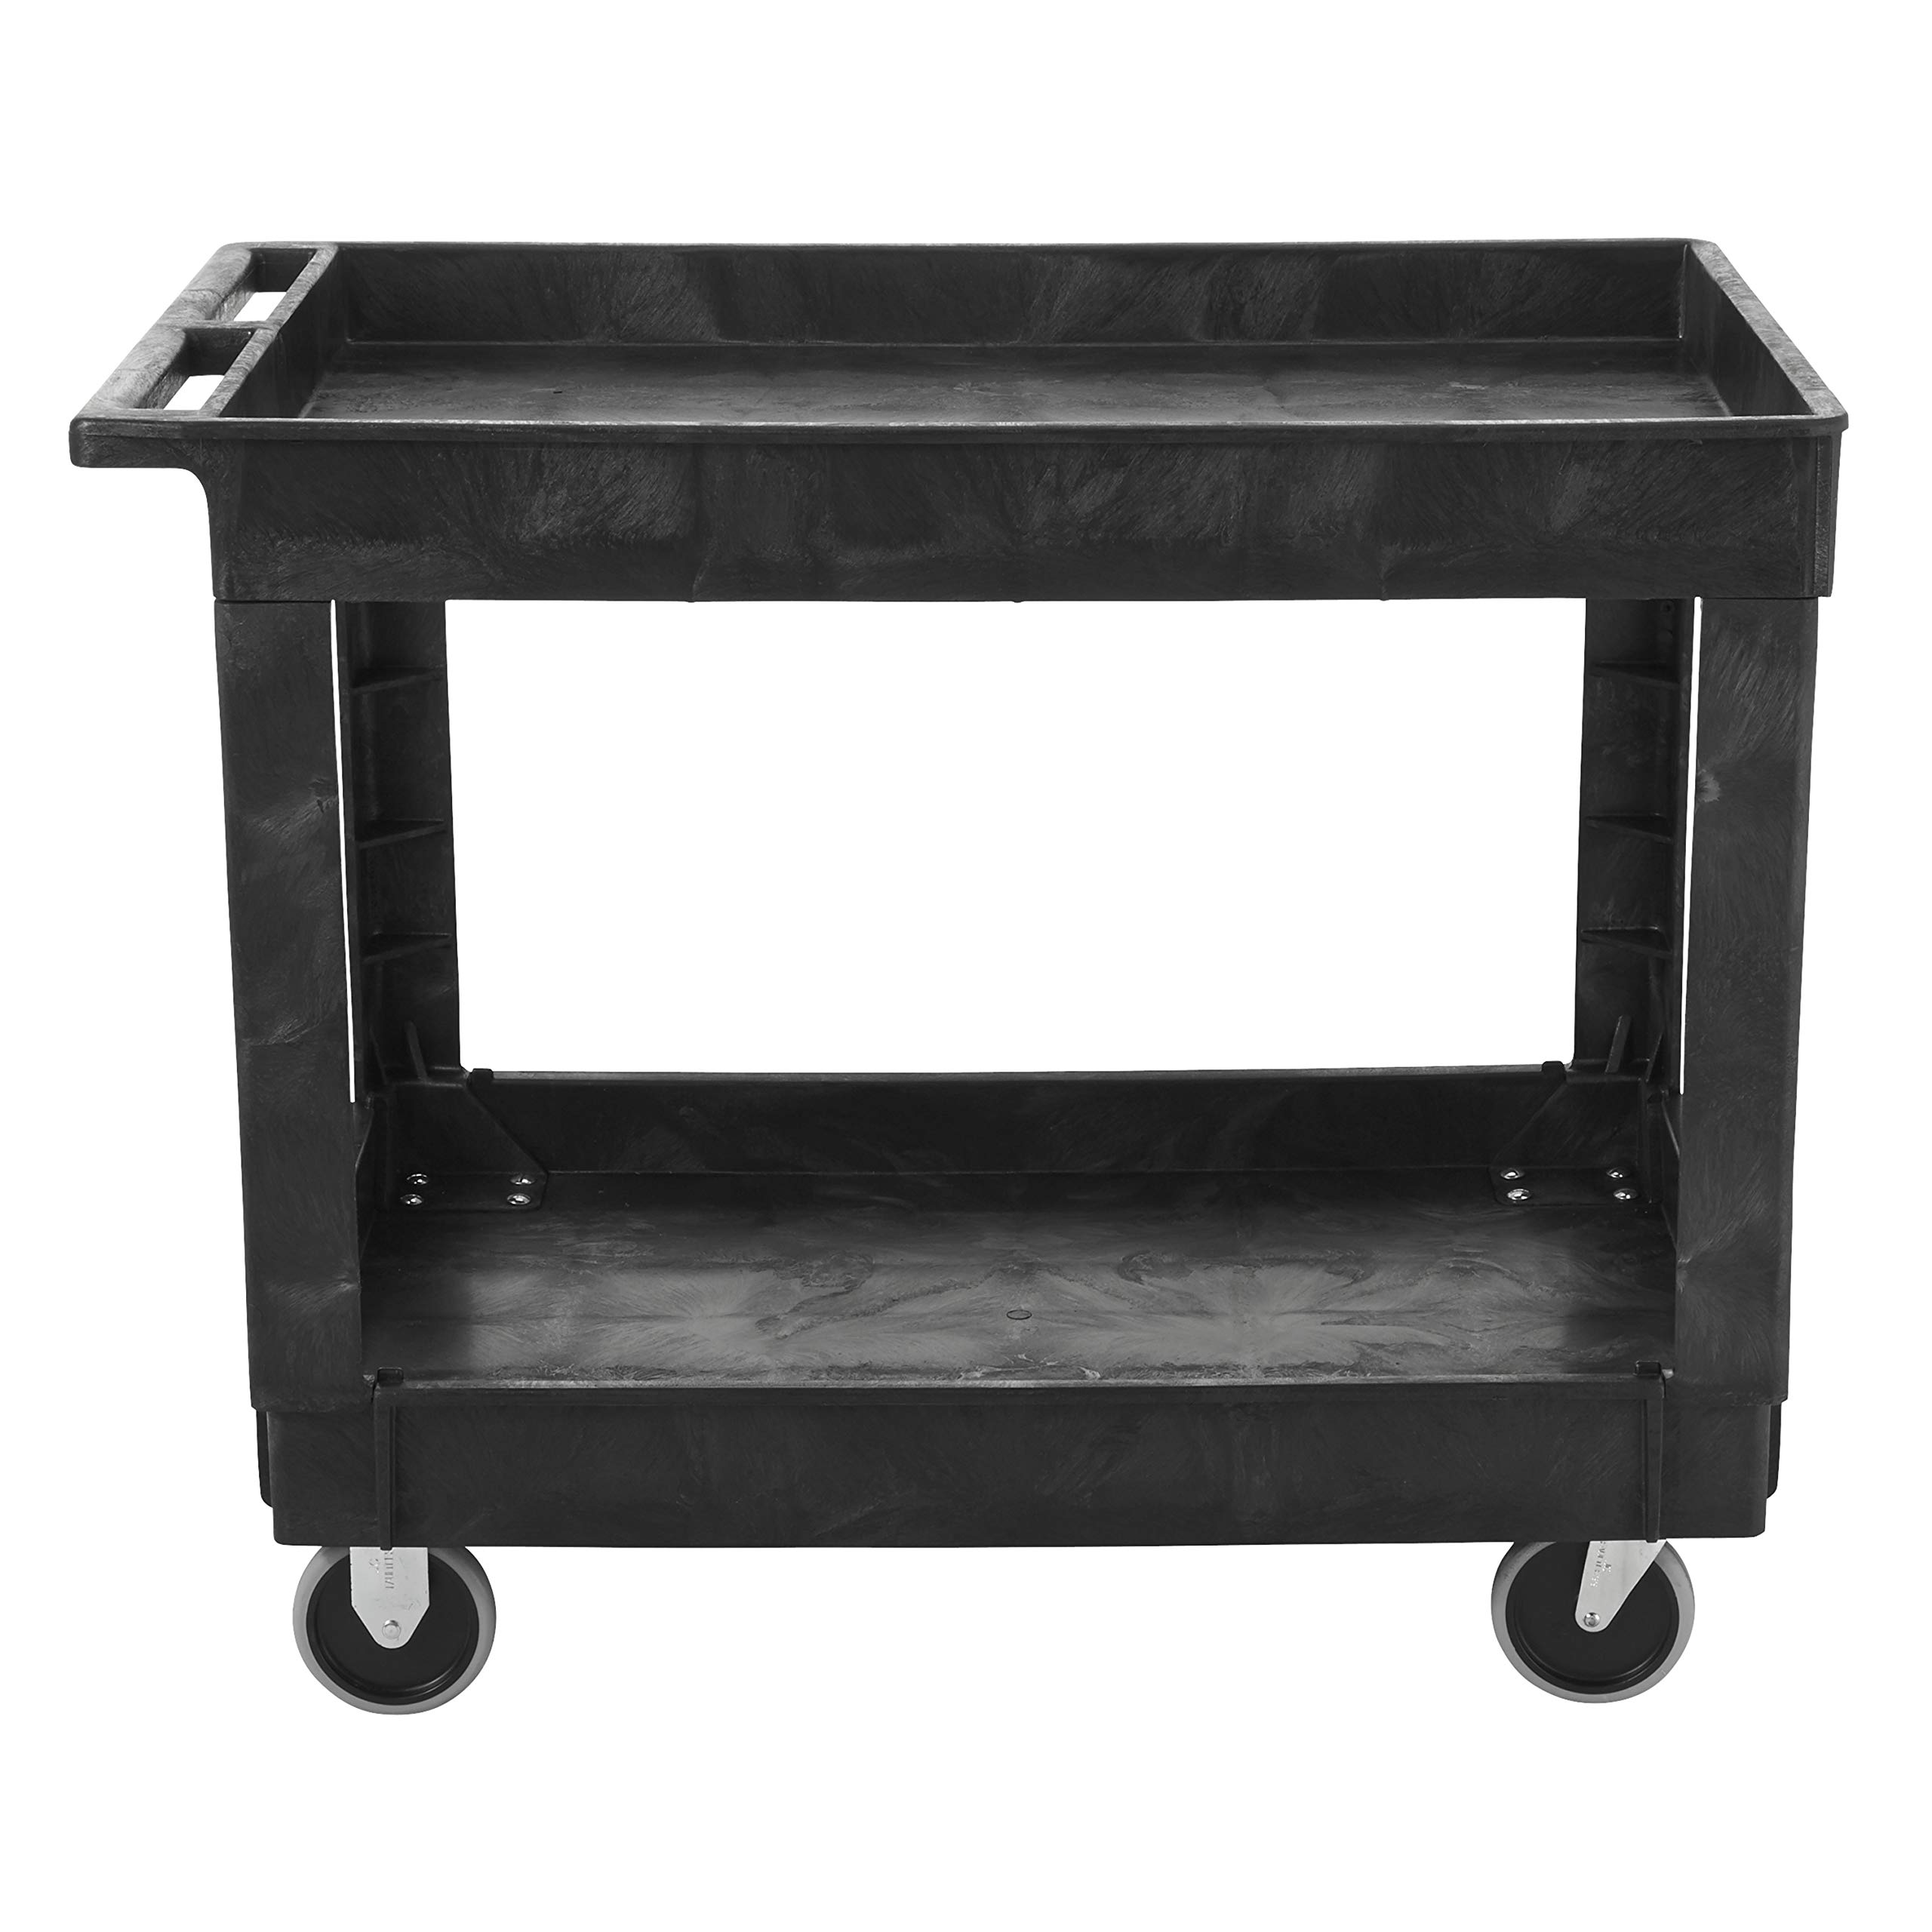 Rubbermaid Commercial Utility Cart, Lipped Shelves, Medium, Black, 4'' Non-Marking Swivel Casters, 300 lb Capacity (FG9T6700BLA) by Rubbermaid Commercial Products